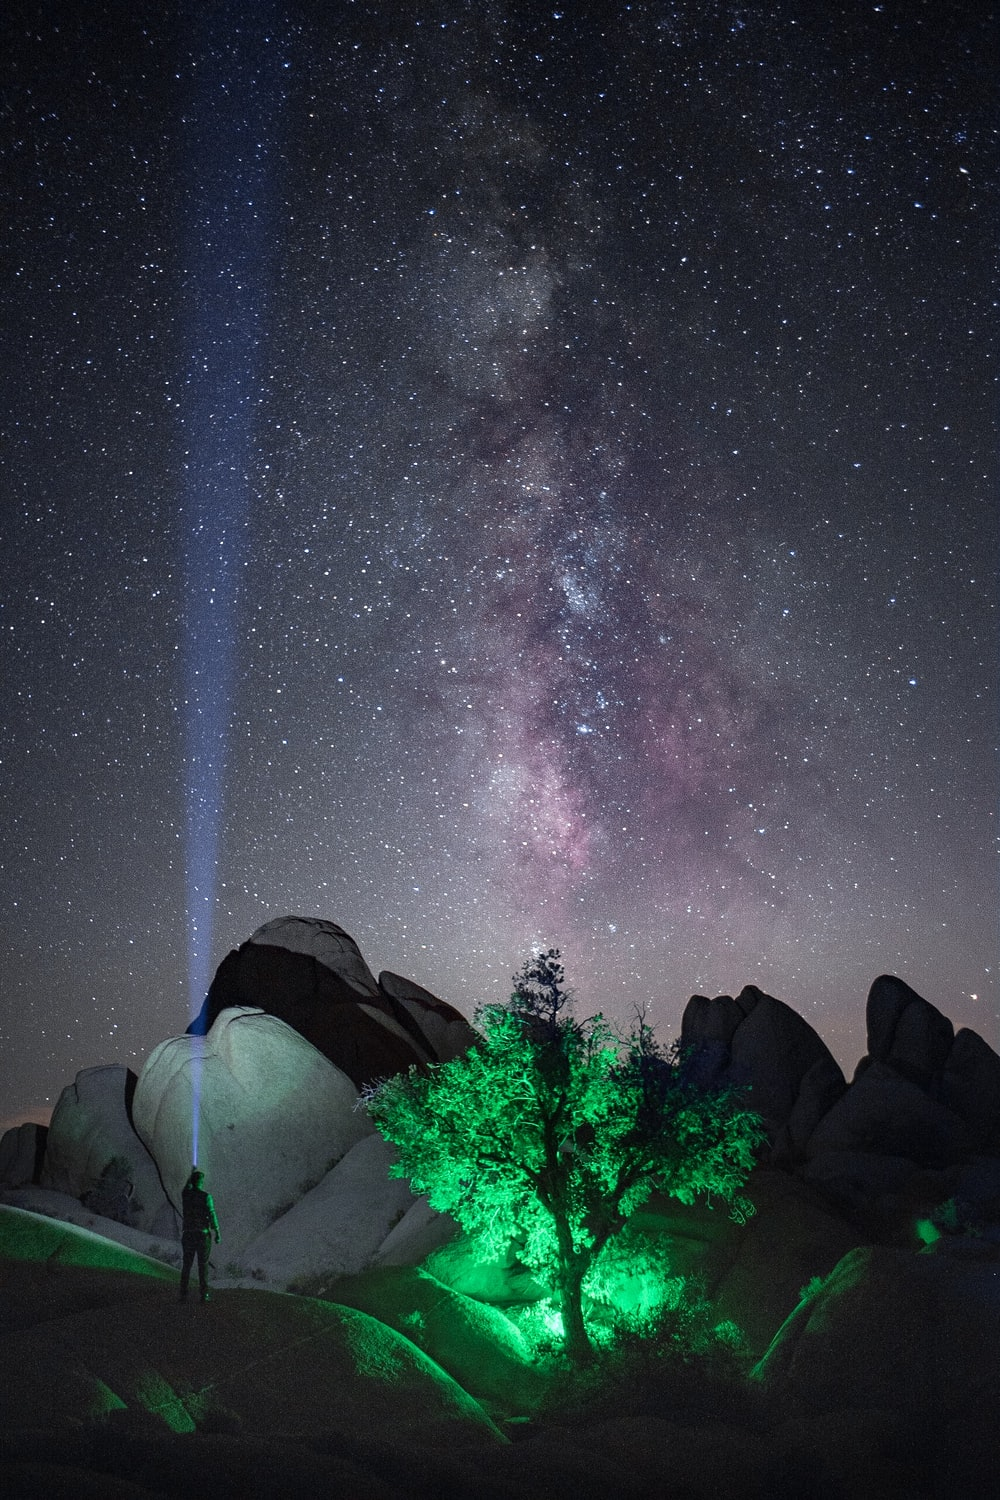 person with flashlight near lighted green tree on mountain under starry night